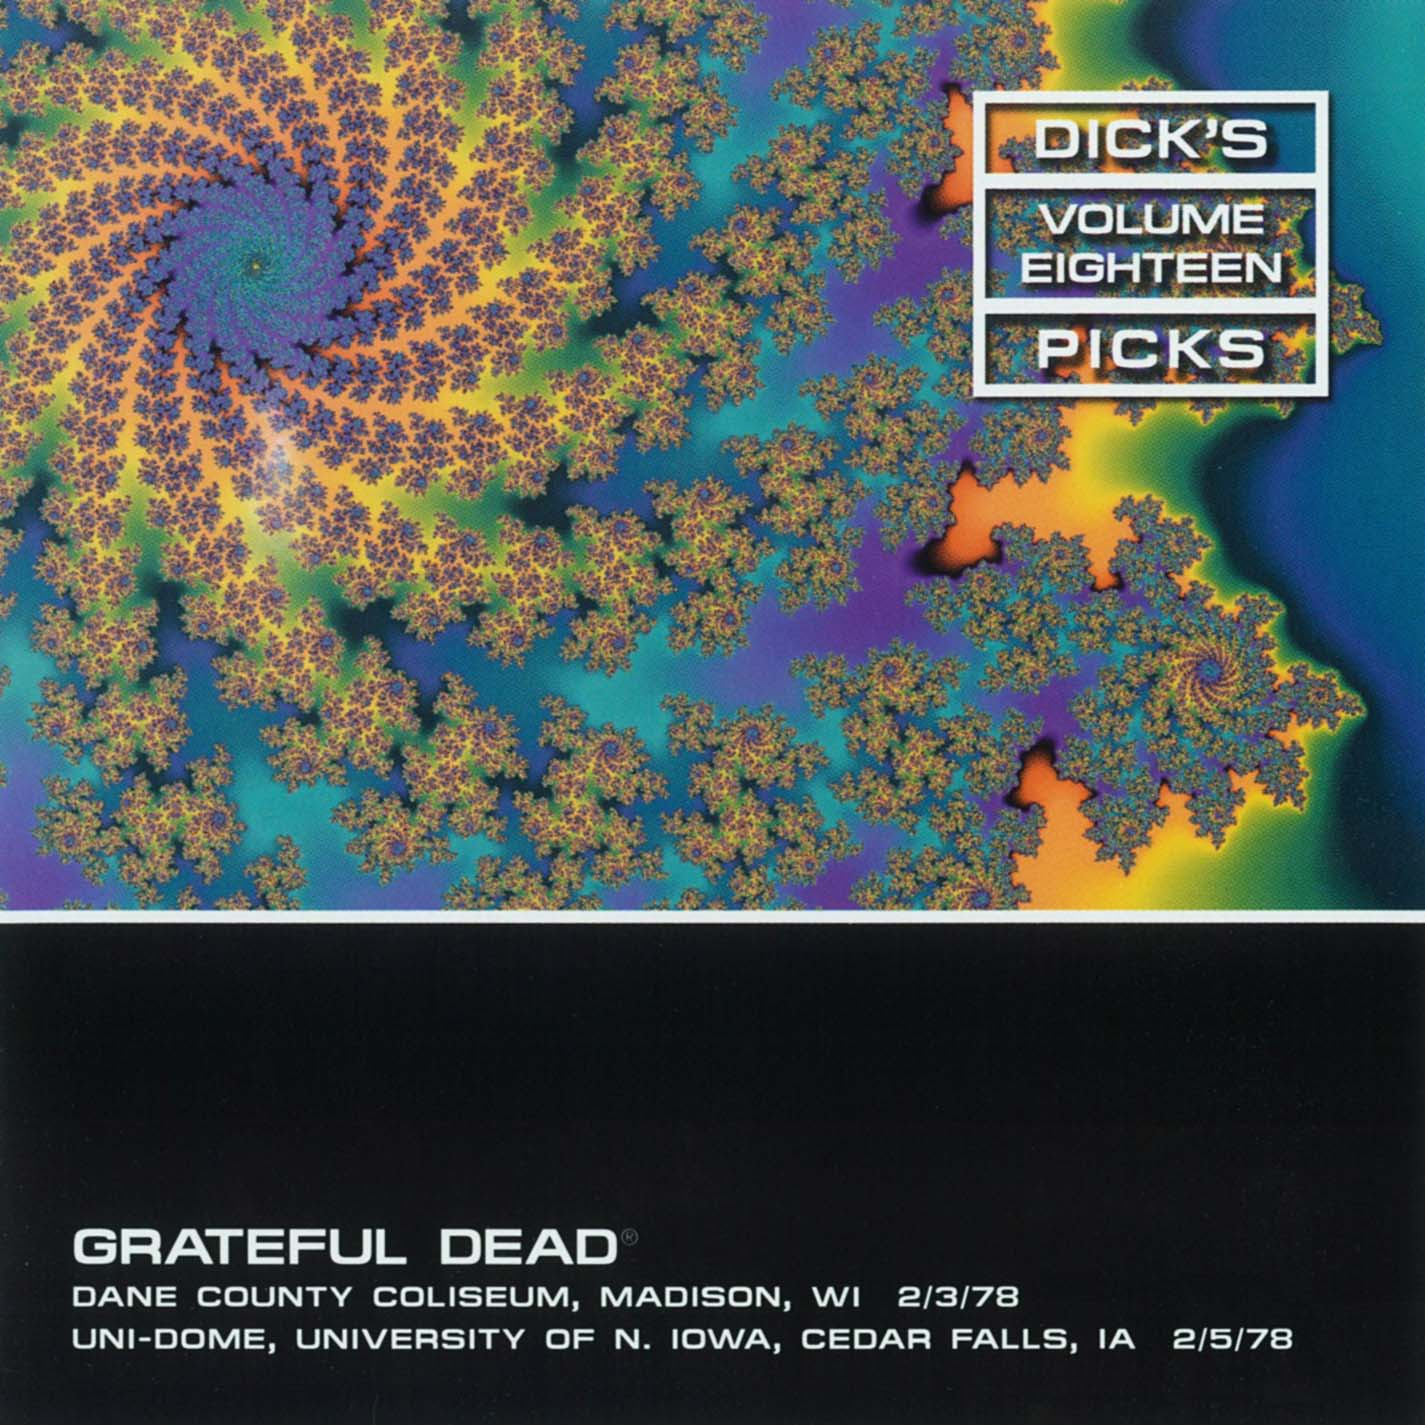 Grateful Dead Dick's Picks 18 album cover artwork